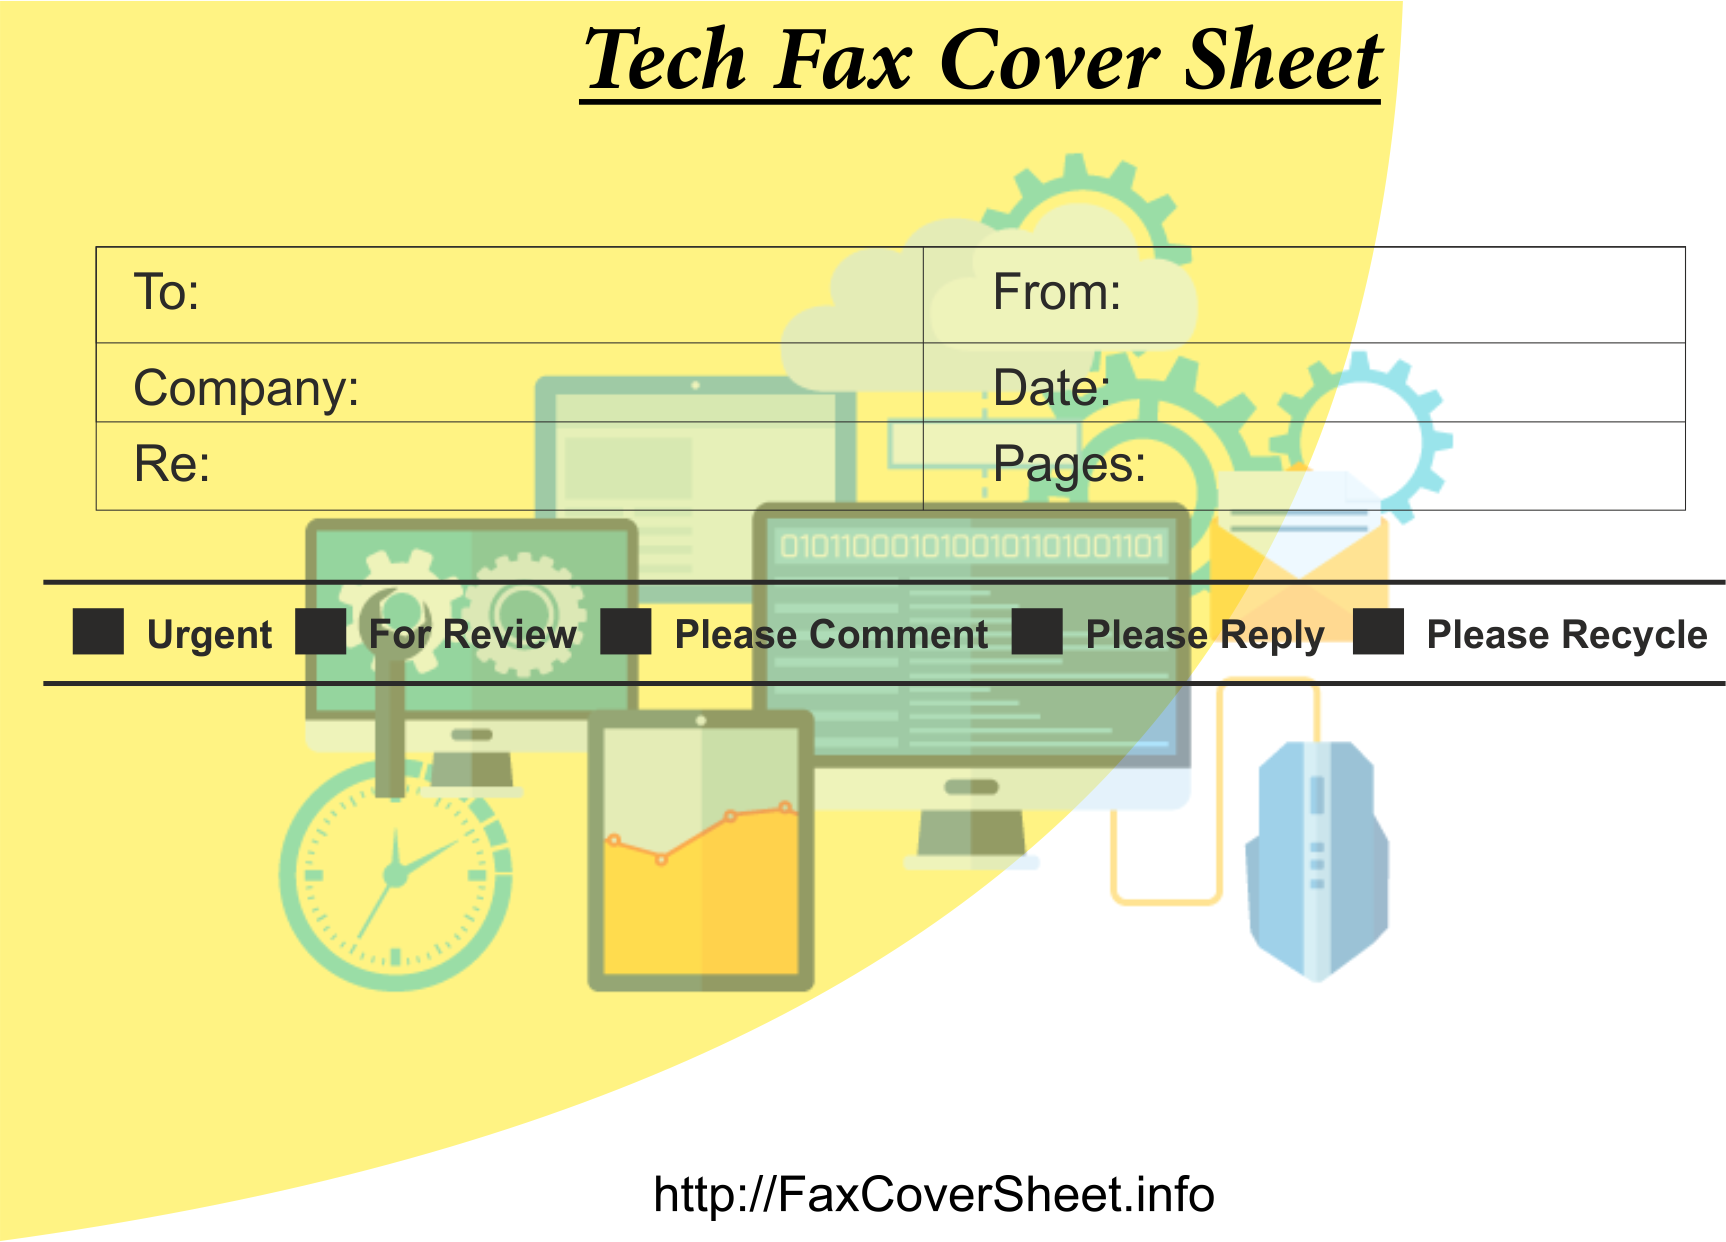 Fax Cover Sheet with Tech DesignProfessional, Download Fax Cover Sheet with Tech DesignProfessional